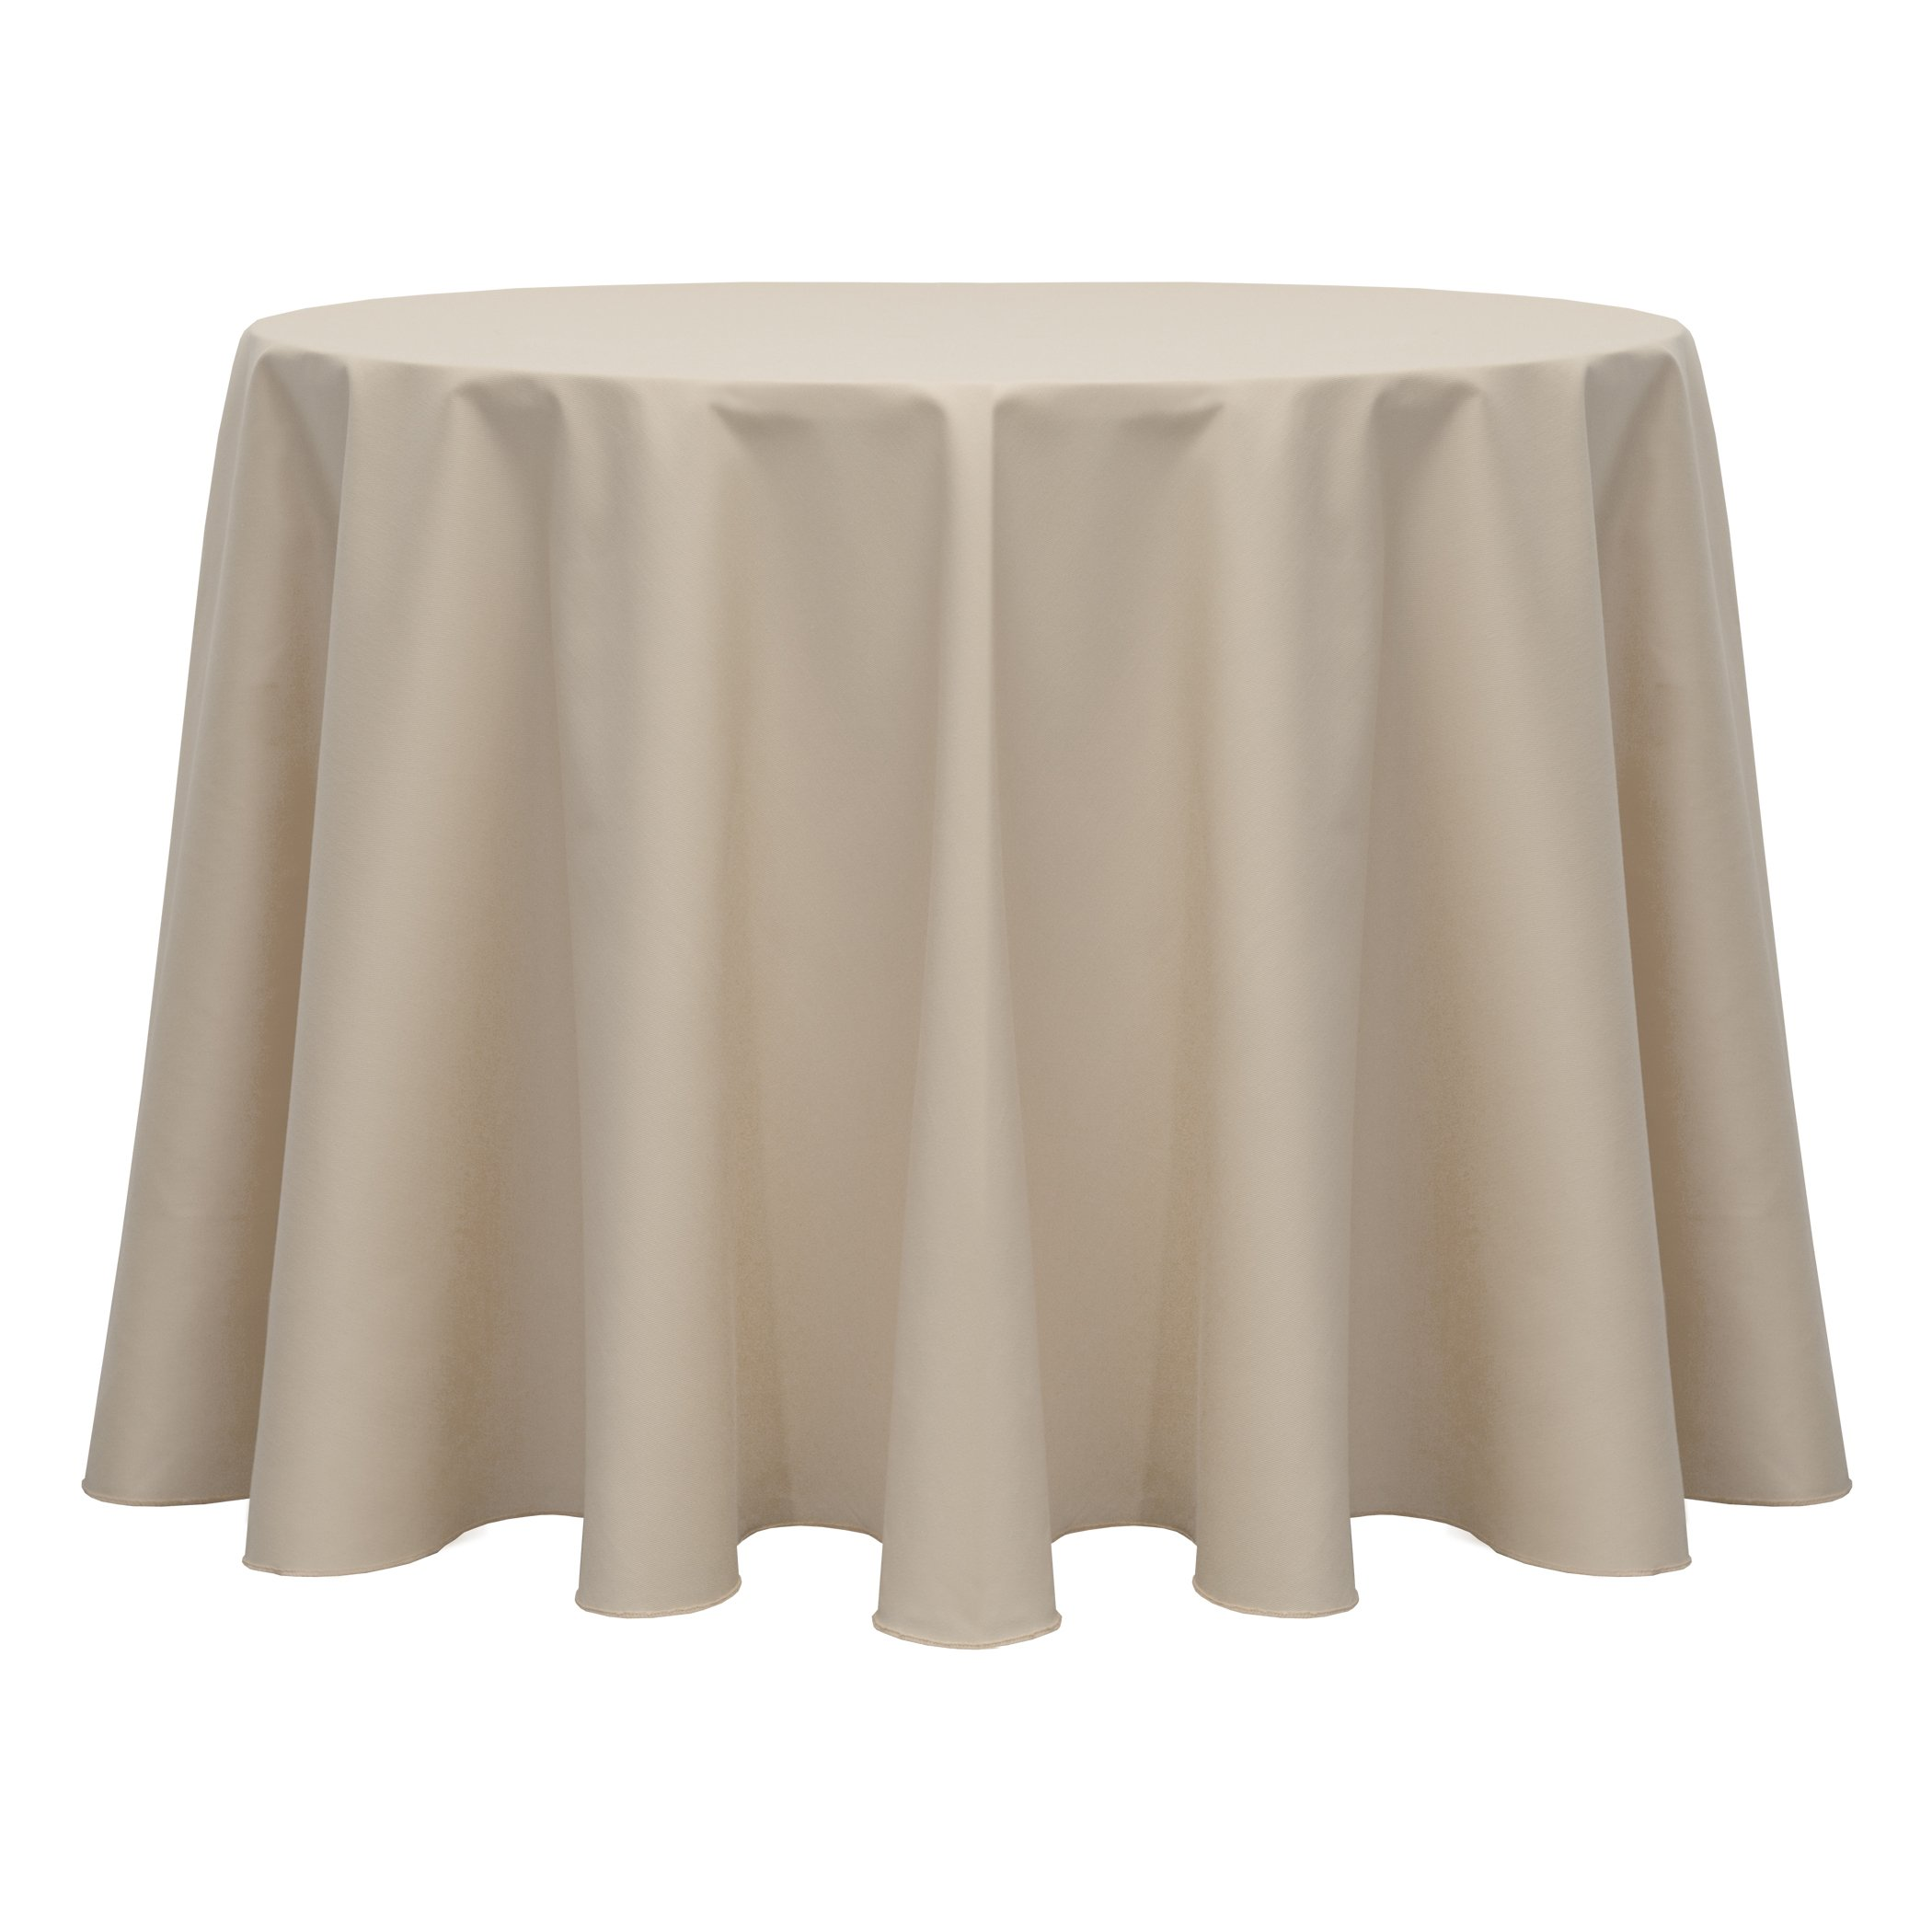 Ultimate Textile (10 Pack) Poly-cotton Twill 60-Inch Round Tablecloth - for Restaurant and Catering, Hotel or Home Dining use, Beige